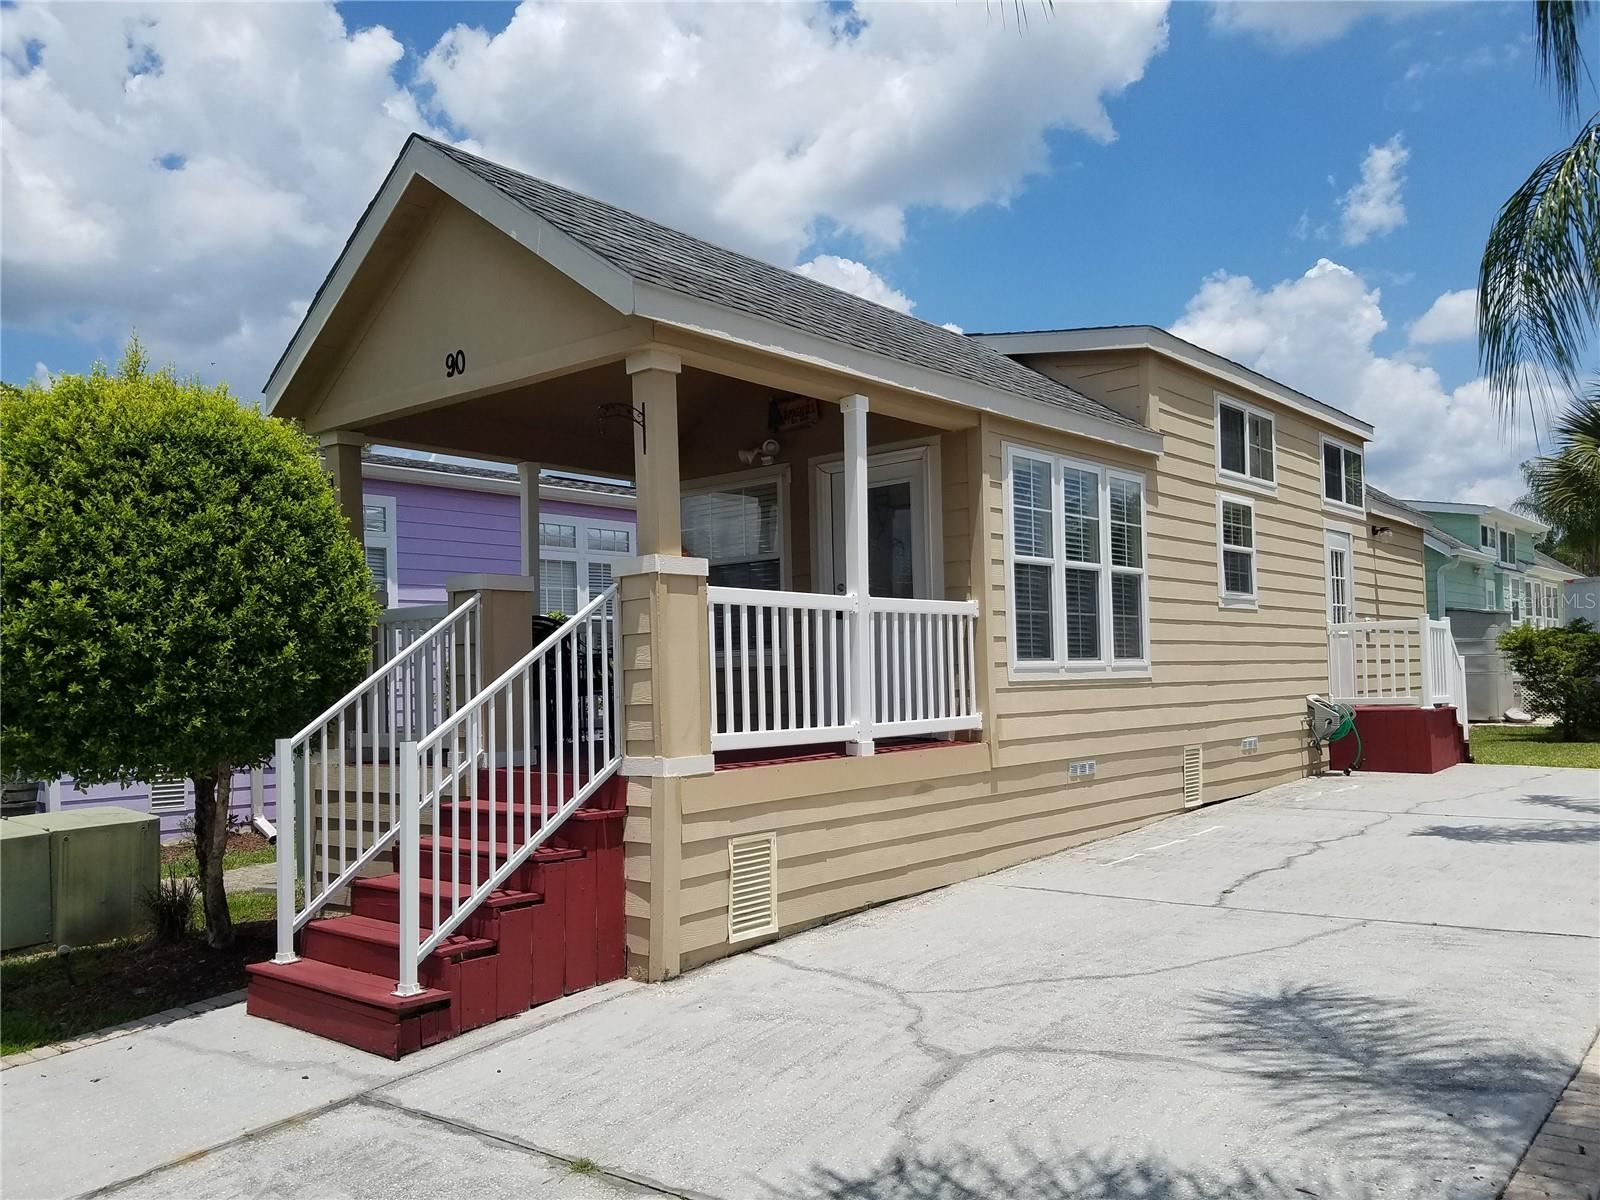 2650 HOLIDAY TRAIL #90, Kissimmee, FL 34746 - #: S5052551